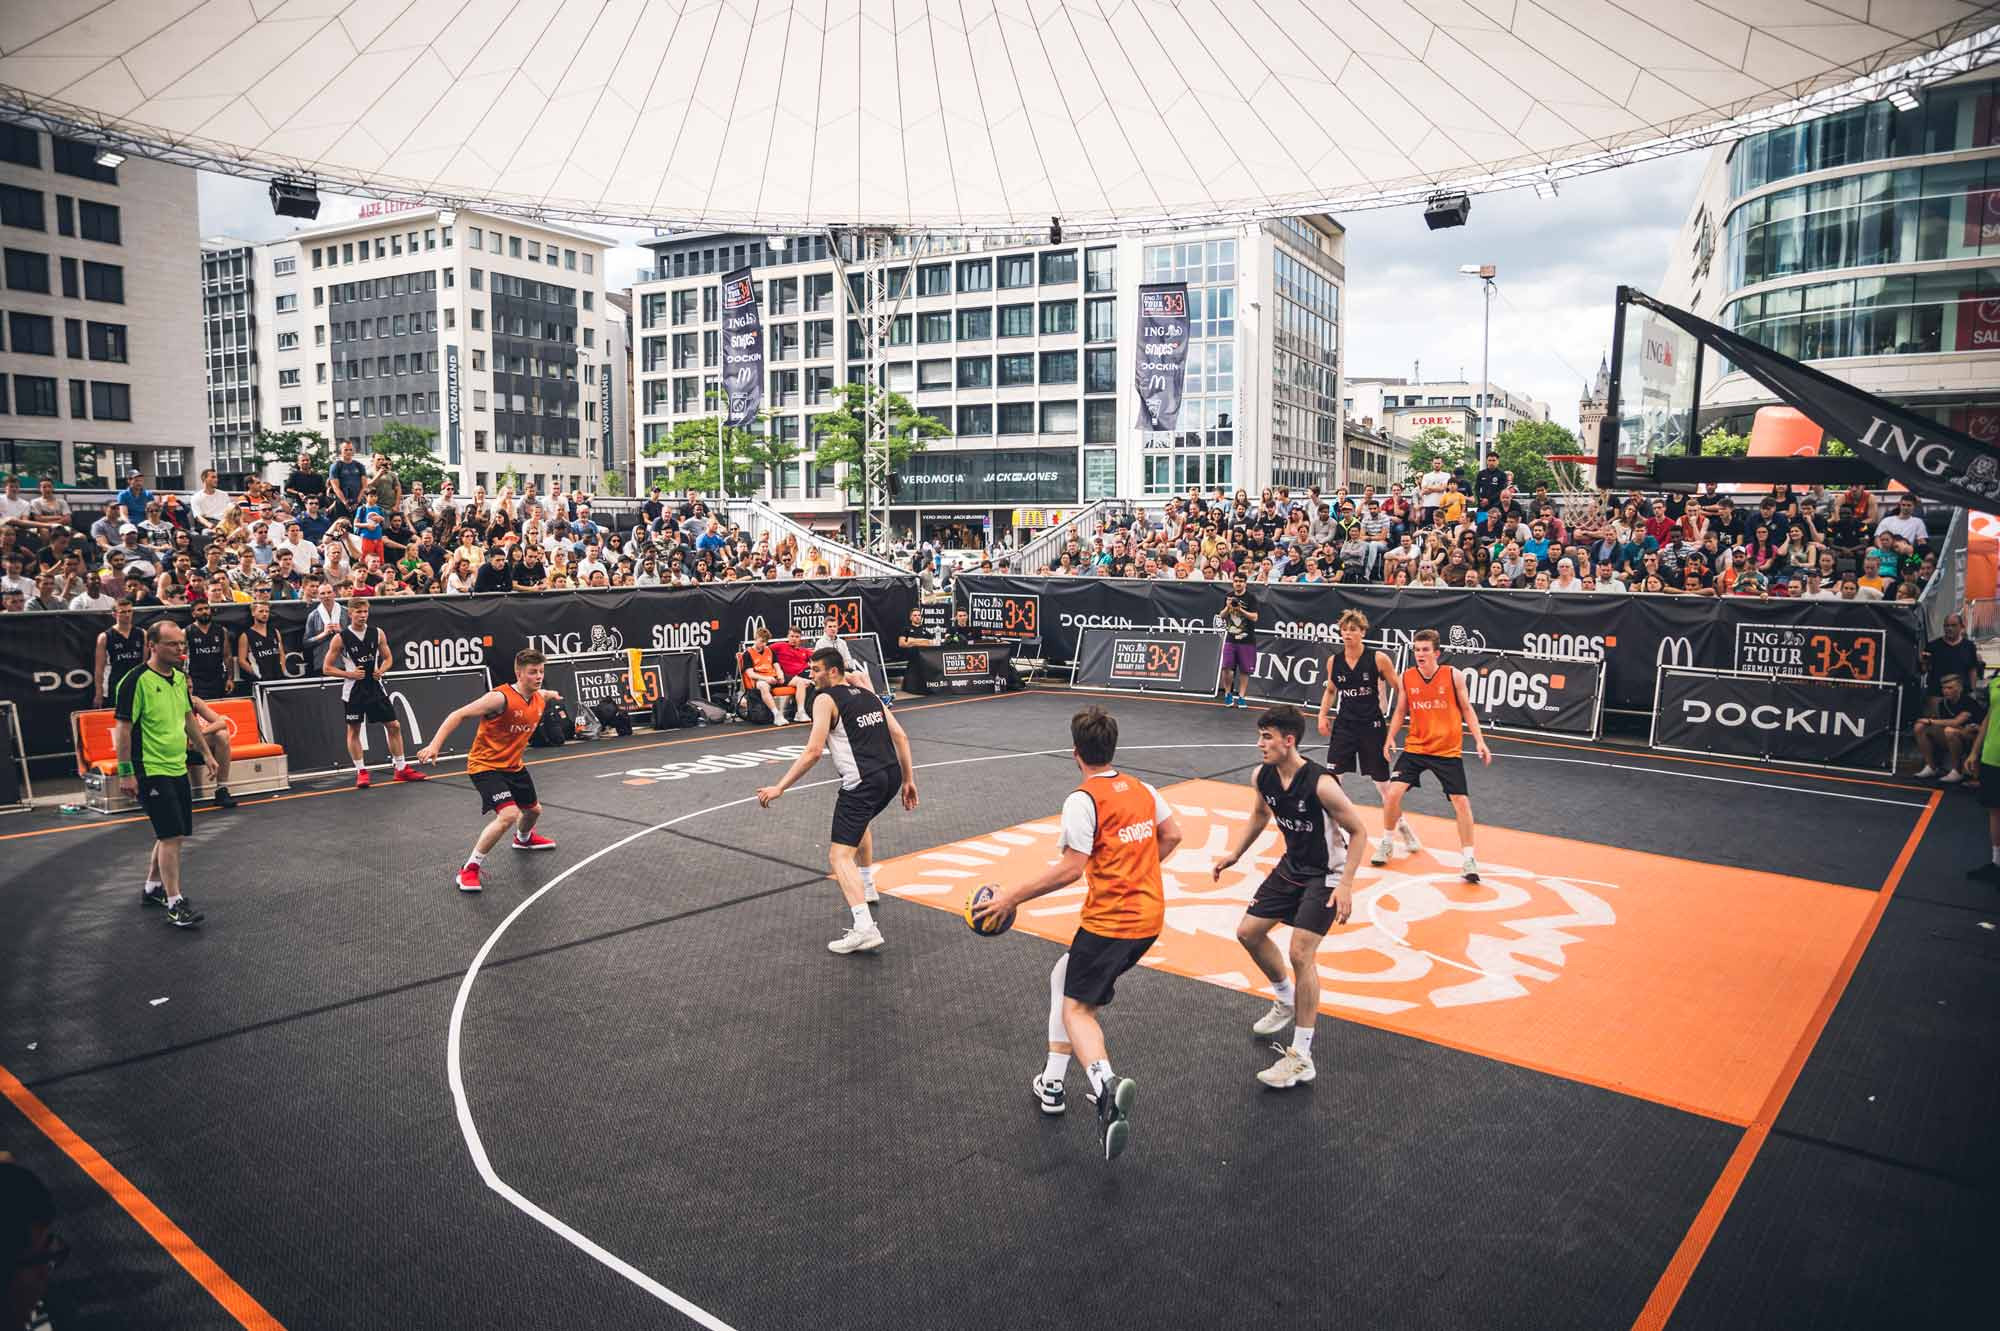 Beach volleyball, rowing and 3x3 basketball chosen as optional sports for Rhine-Ruhr 2025 bid